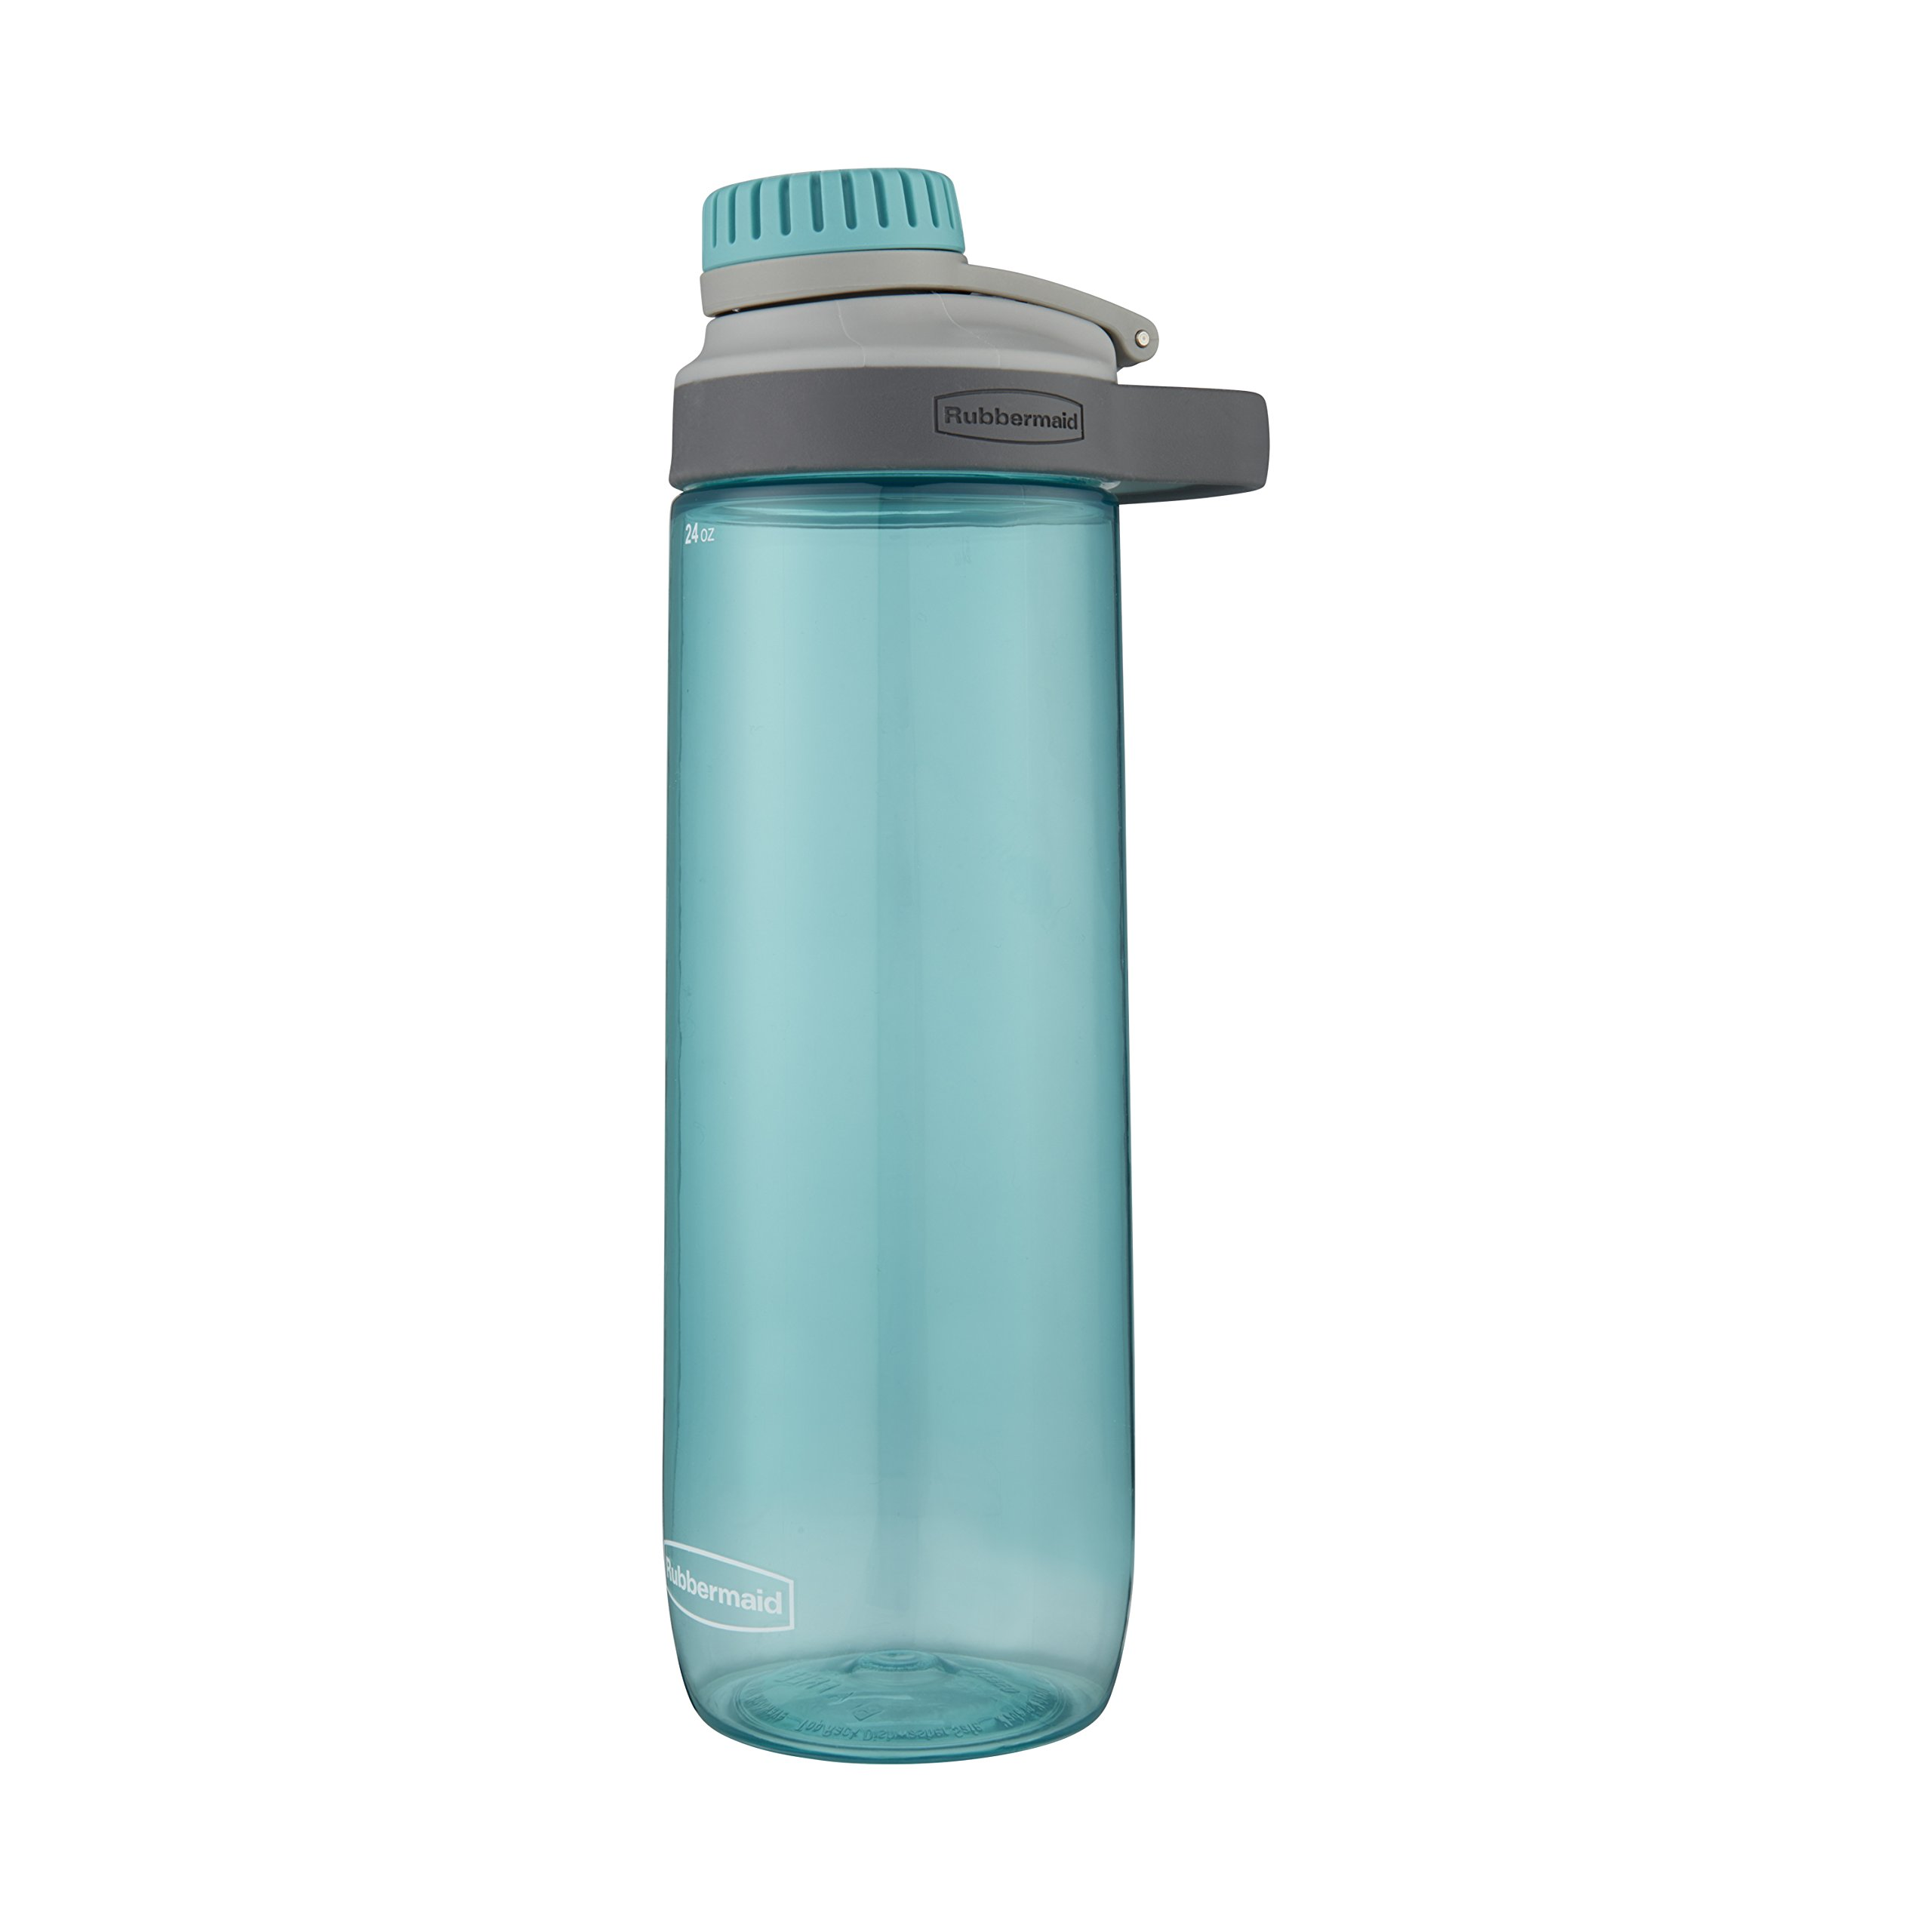 Rubbermaid Leak-Proof Chug Water Bottle, 24 oz, Aqua Waters by Rubbermaid